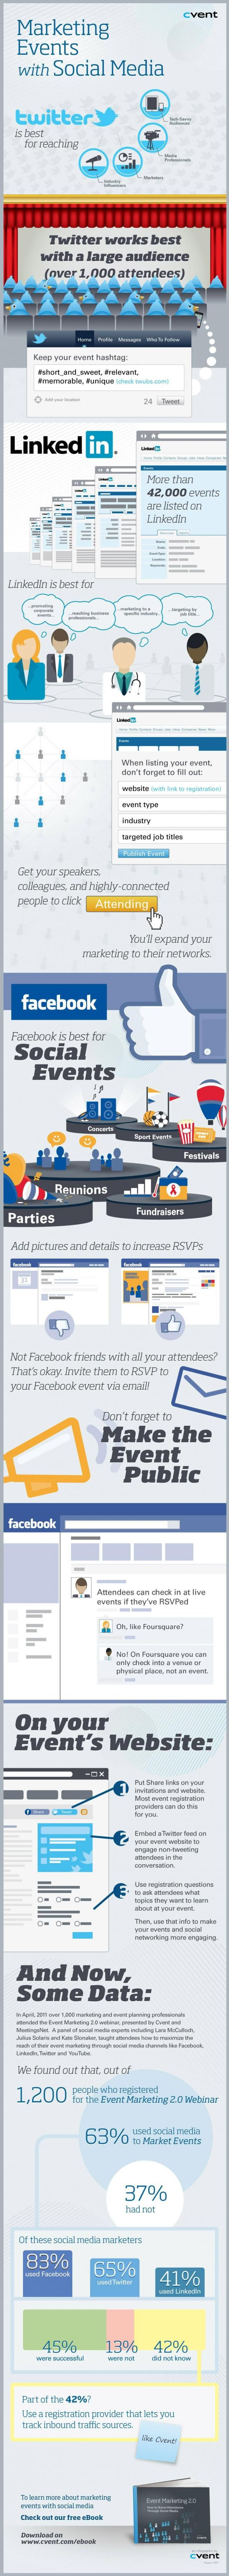 Marketing Your Charity Events with Social Media - How to use all the different social media sites to promote your fundraising event and attract a bigger crowd. More fundraising event ideas on www.fundraiserhelp.com plus loads of event themes and extra profit tips. #infographic #socialmedia #marketing